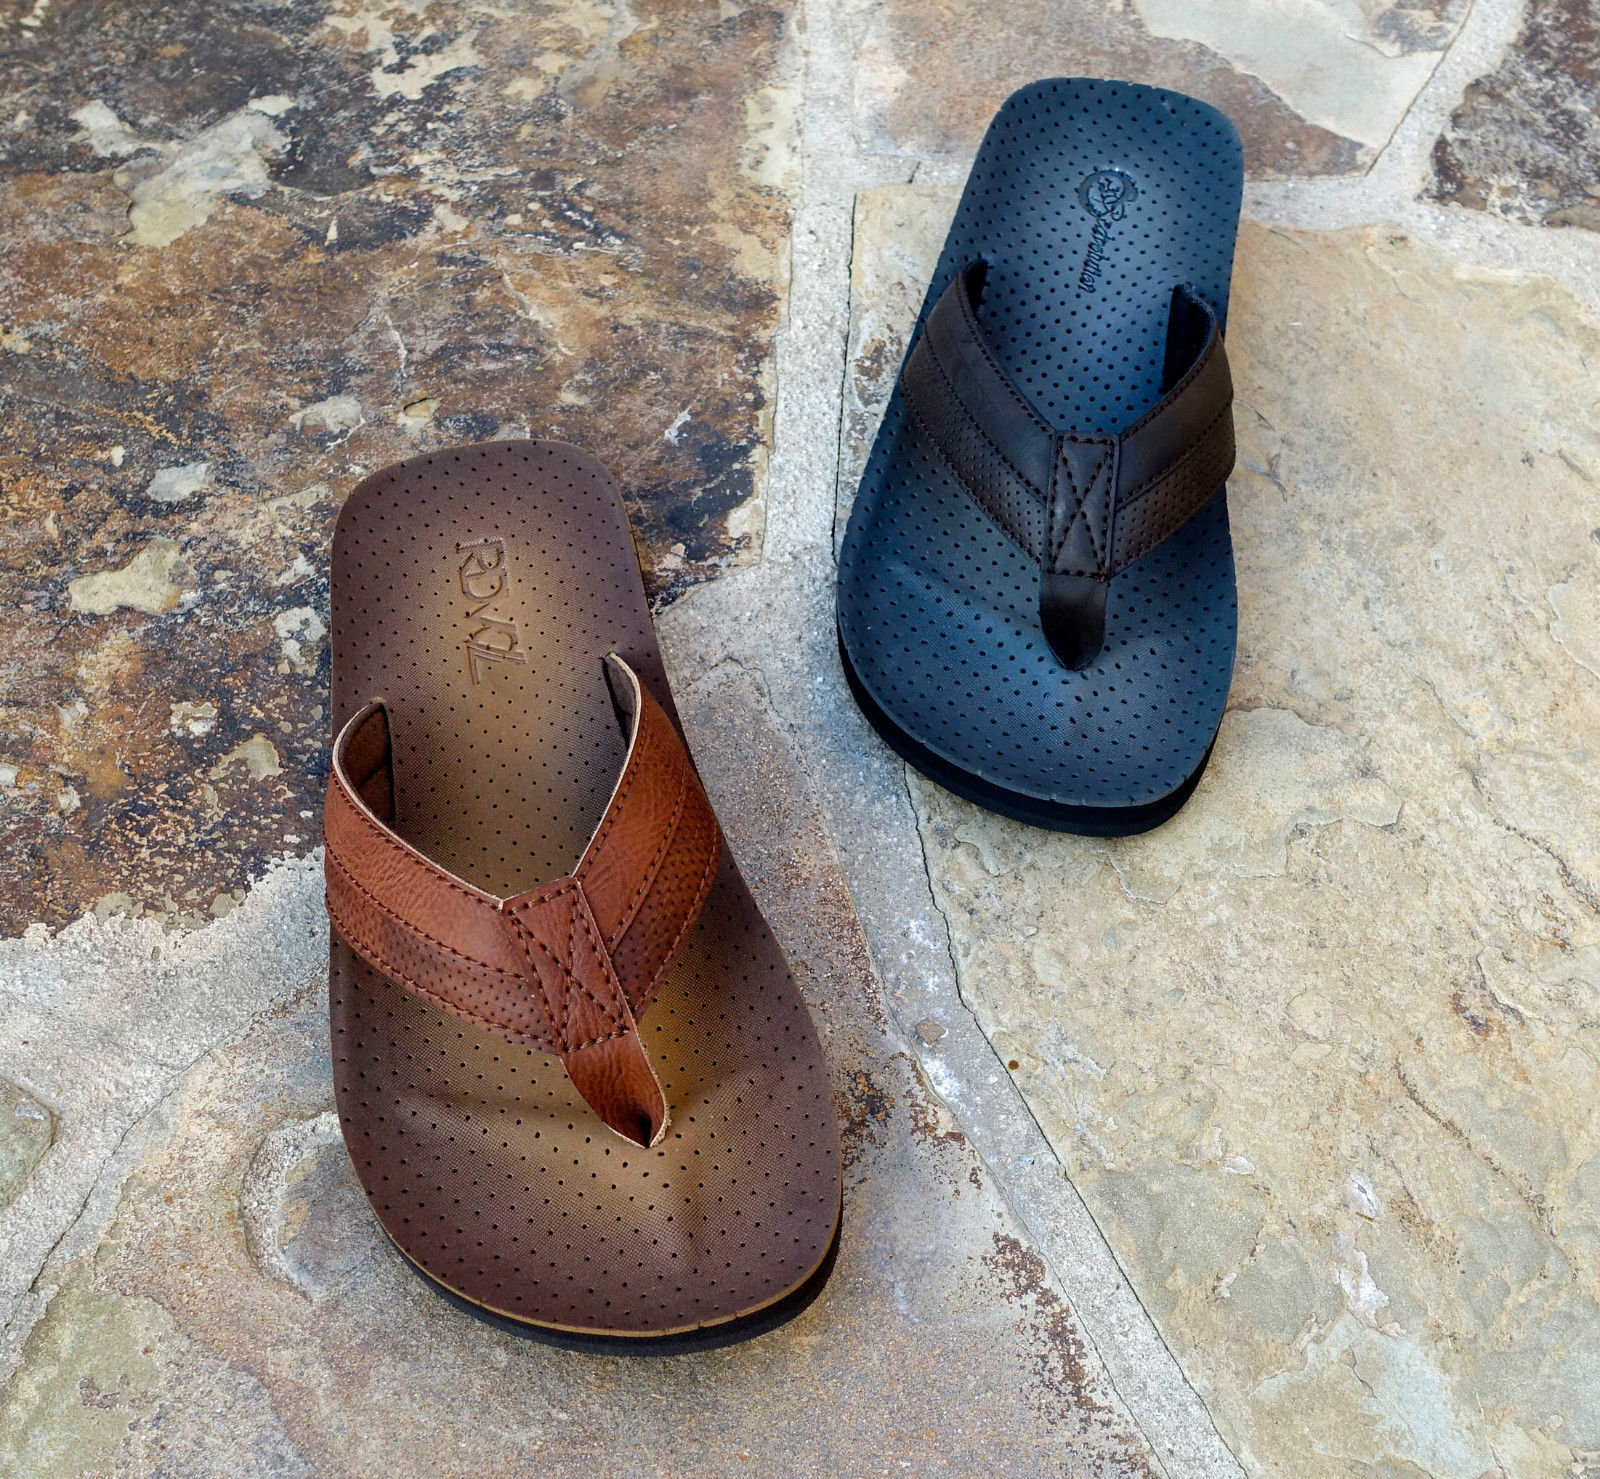 d4fc7d6bc Wholesale Lot Men amp  039 s Sandals RDVOL Casual Beach Fli.. in Sandals   amp amp  Flip Flops